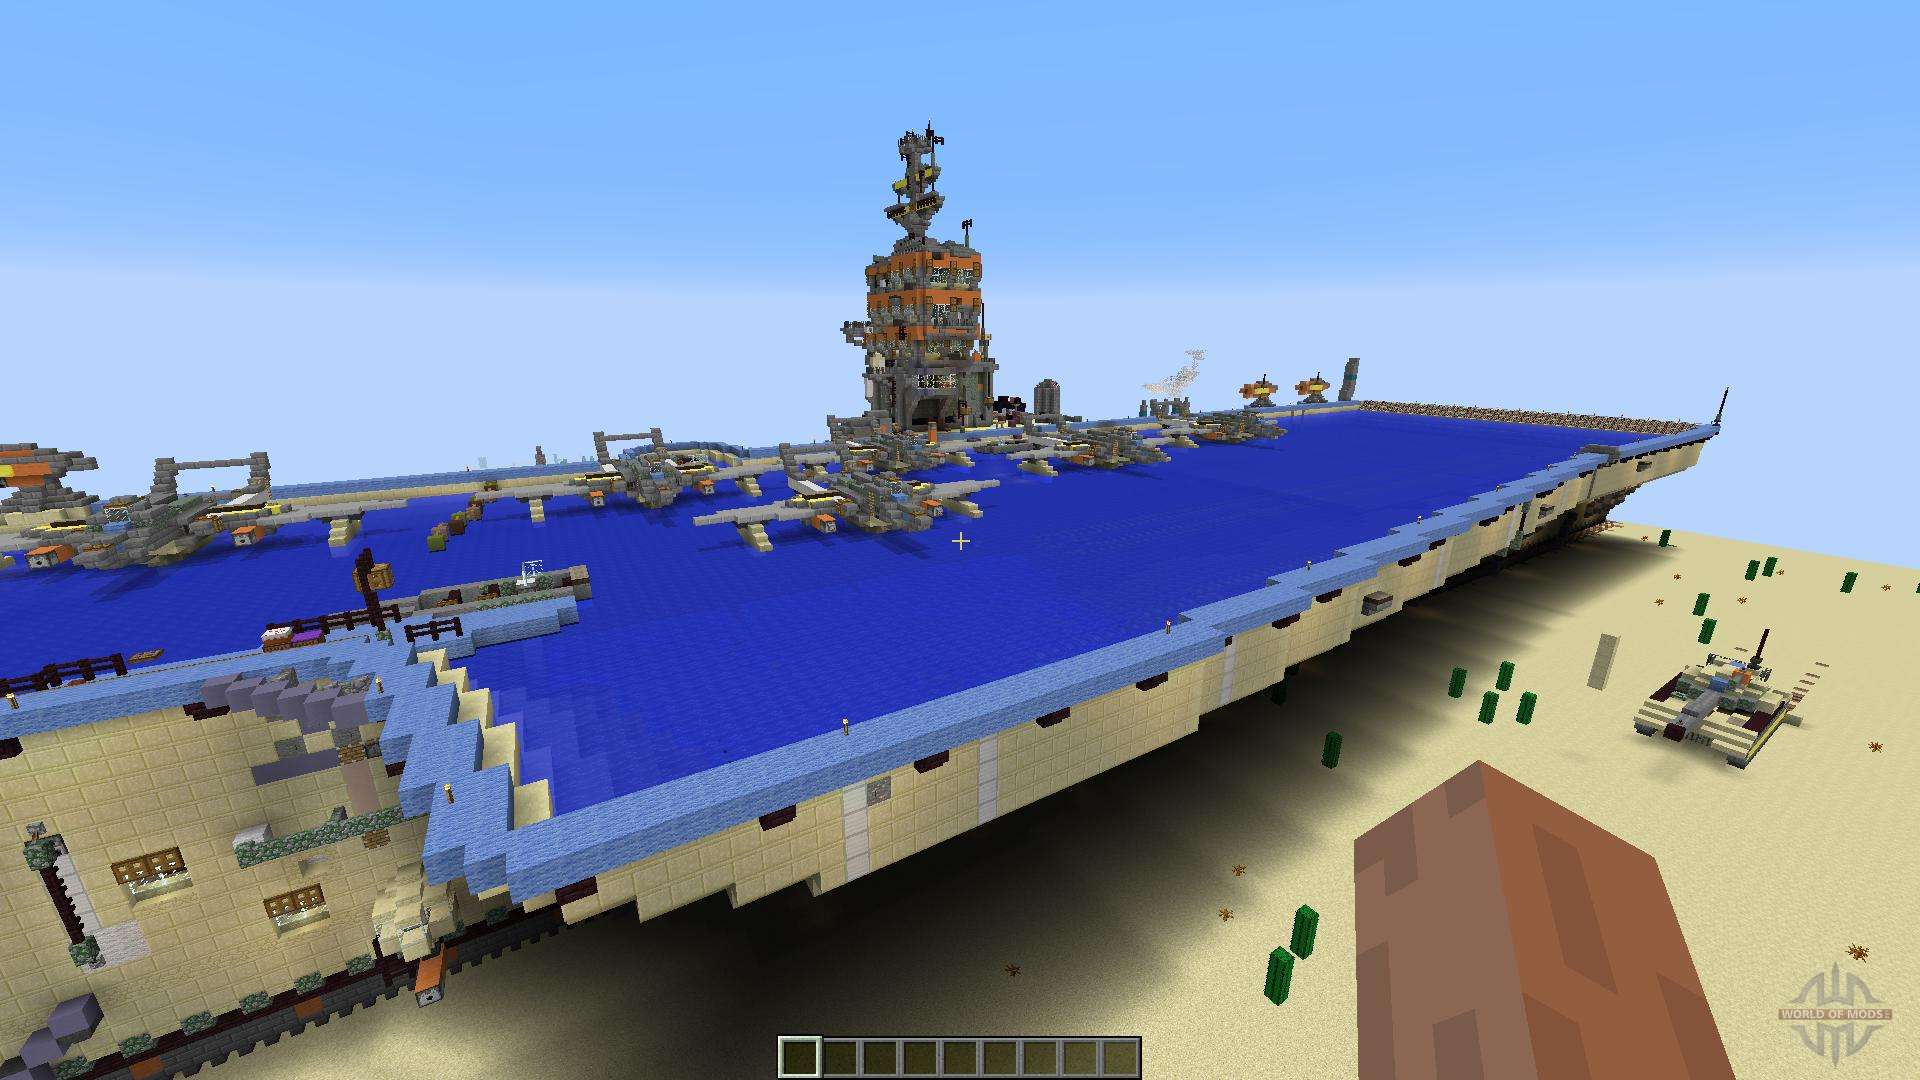 Le Meilleur Opposite Aircraft Carrier For Minecraft Ce Mois Ci